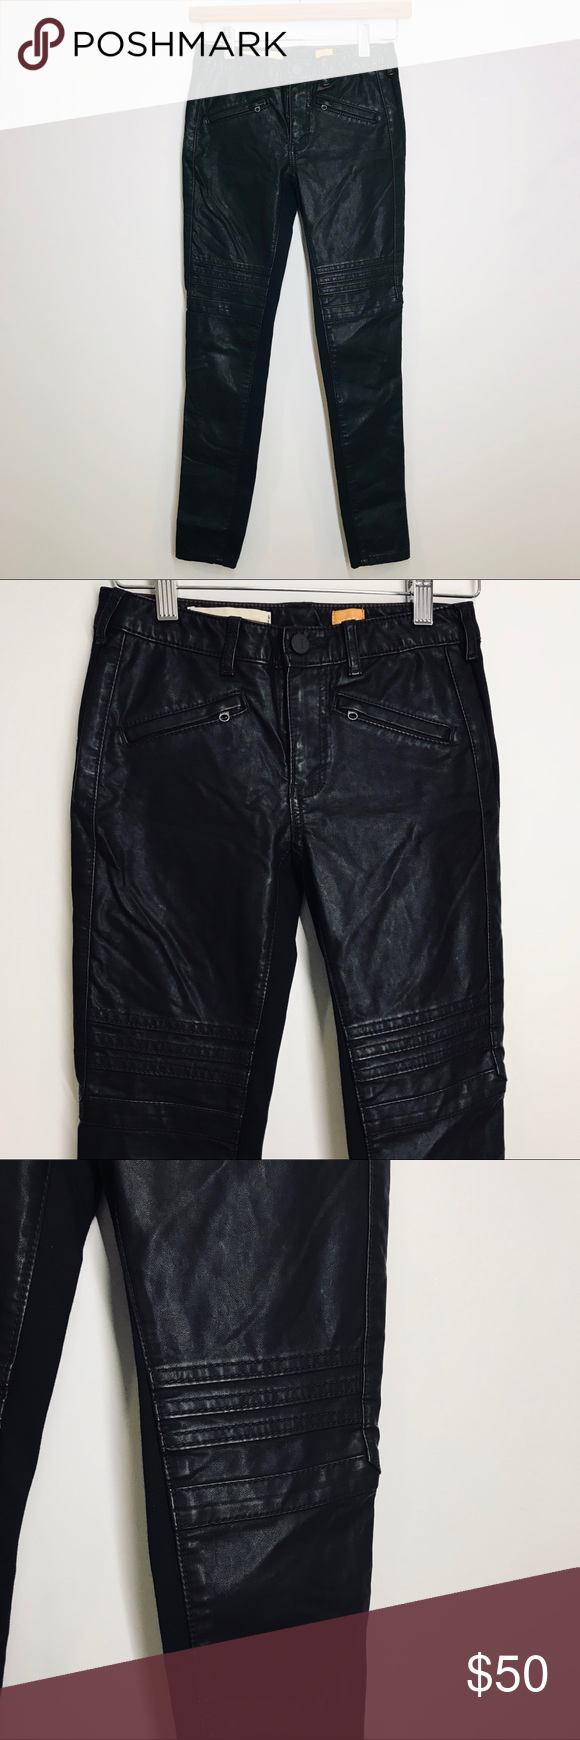 f5fc44c62d132b Anthropologie / moto faux leather jeans Faux leather jeans by Pilcro and  the Letterpress. Front is faux leather and back is like a street by legging  ...